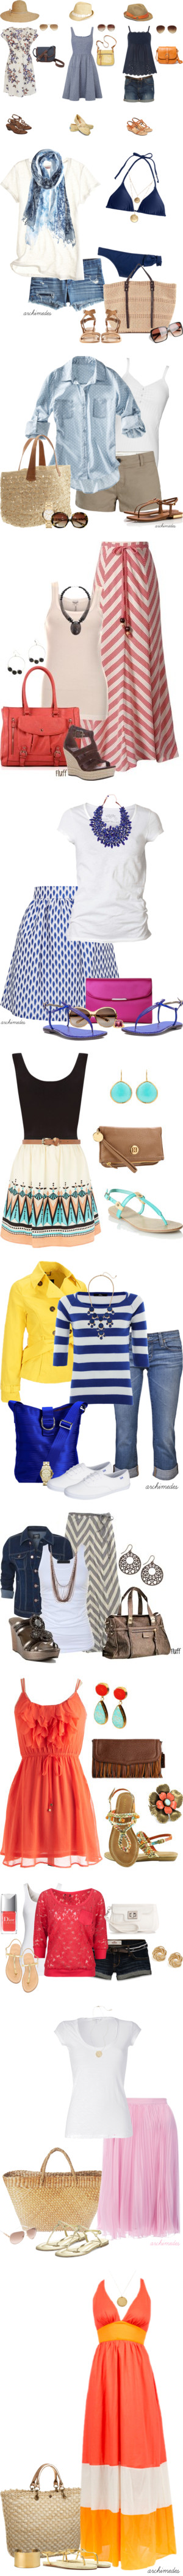 Summertime Cuteness by nikkiebear on Polyvore featuring Oasis, A2 by Aerosoles, Hat Attack, Ray-Ban, MARC BY MARC JACOBS, FOSSIL, MANGO, TOMS, Aerosoles and Dorothy Perkins